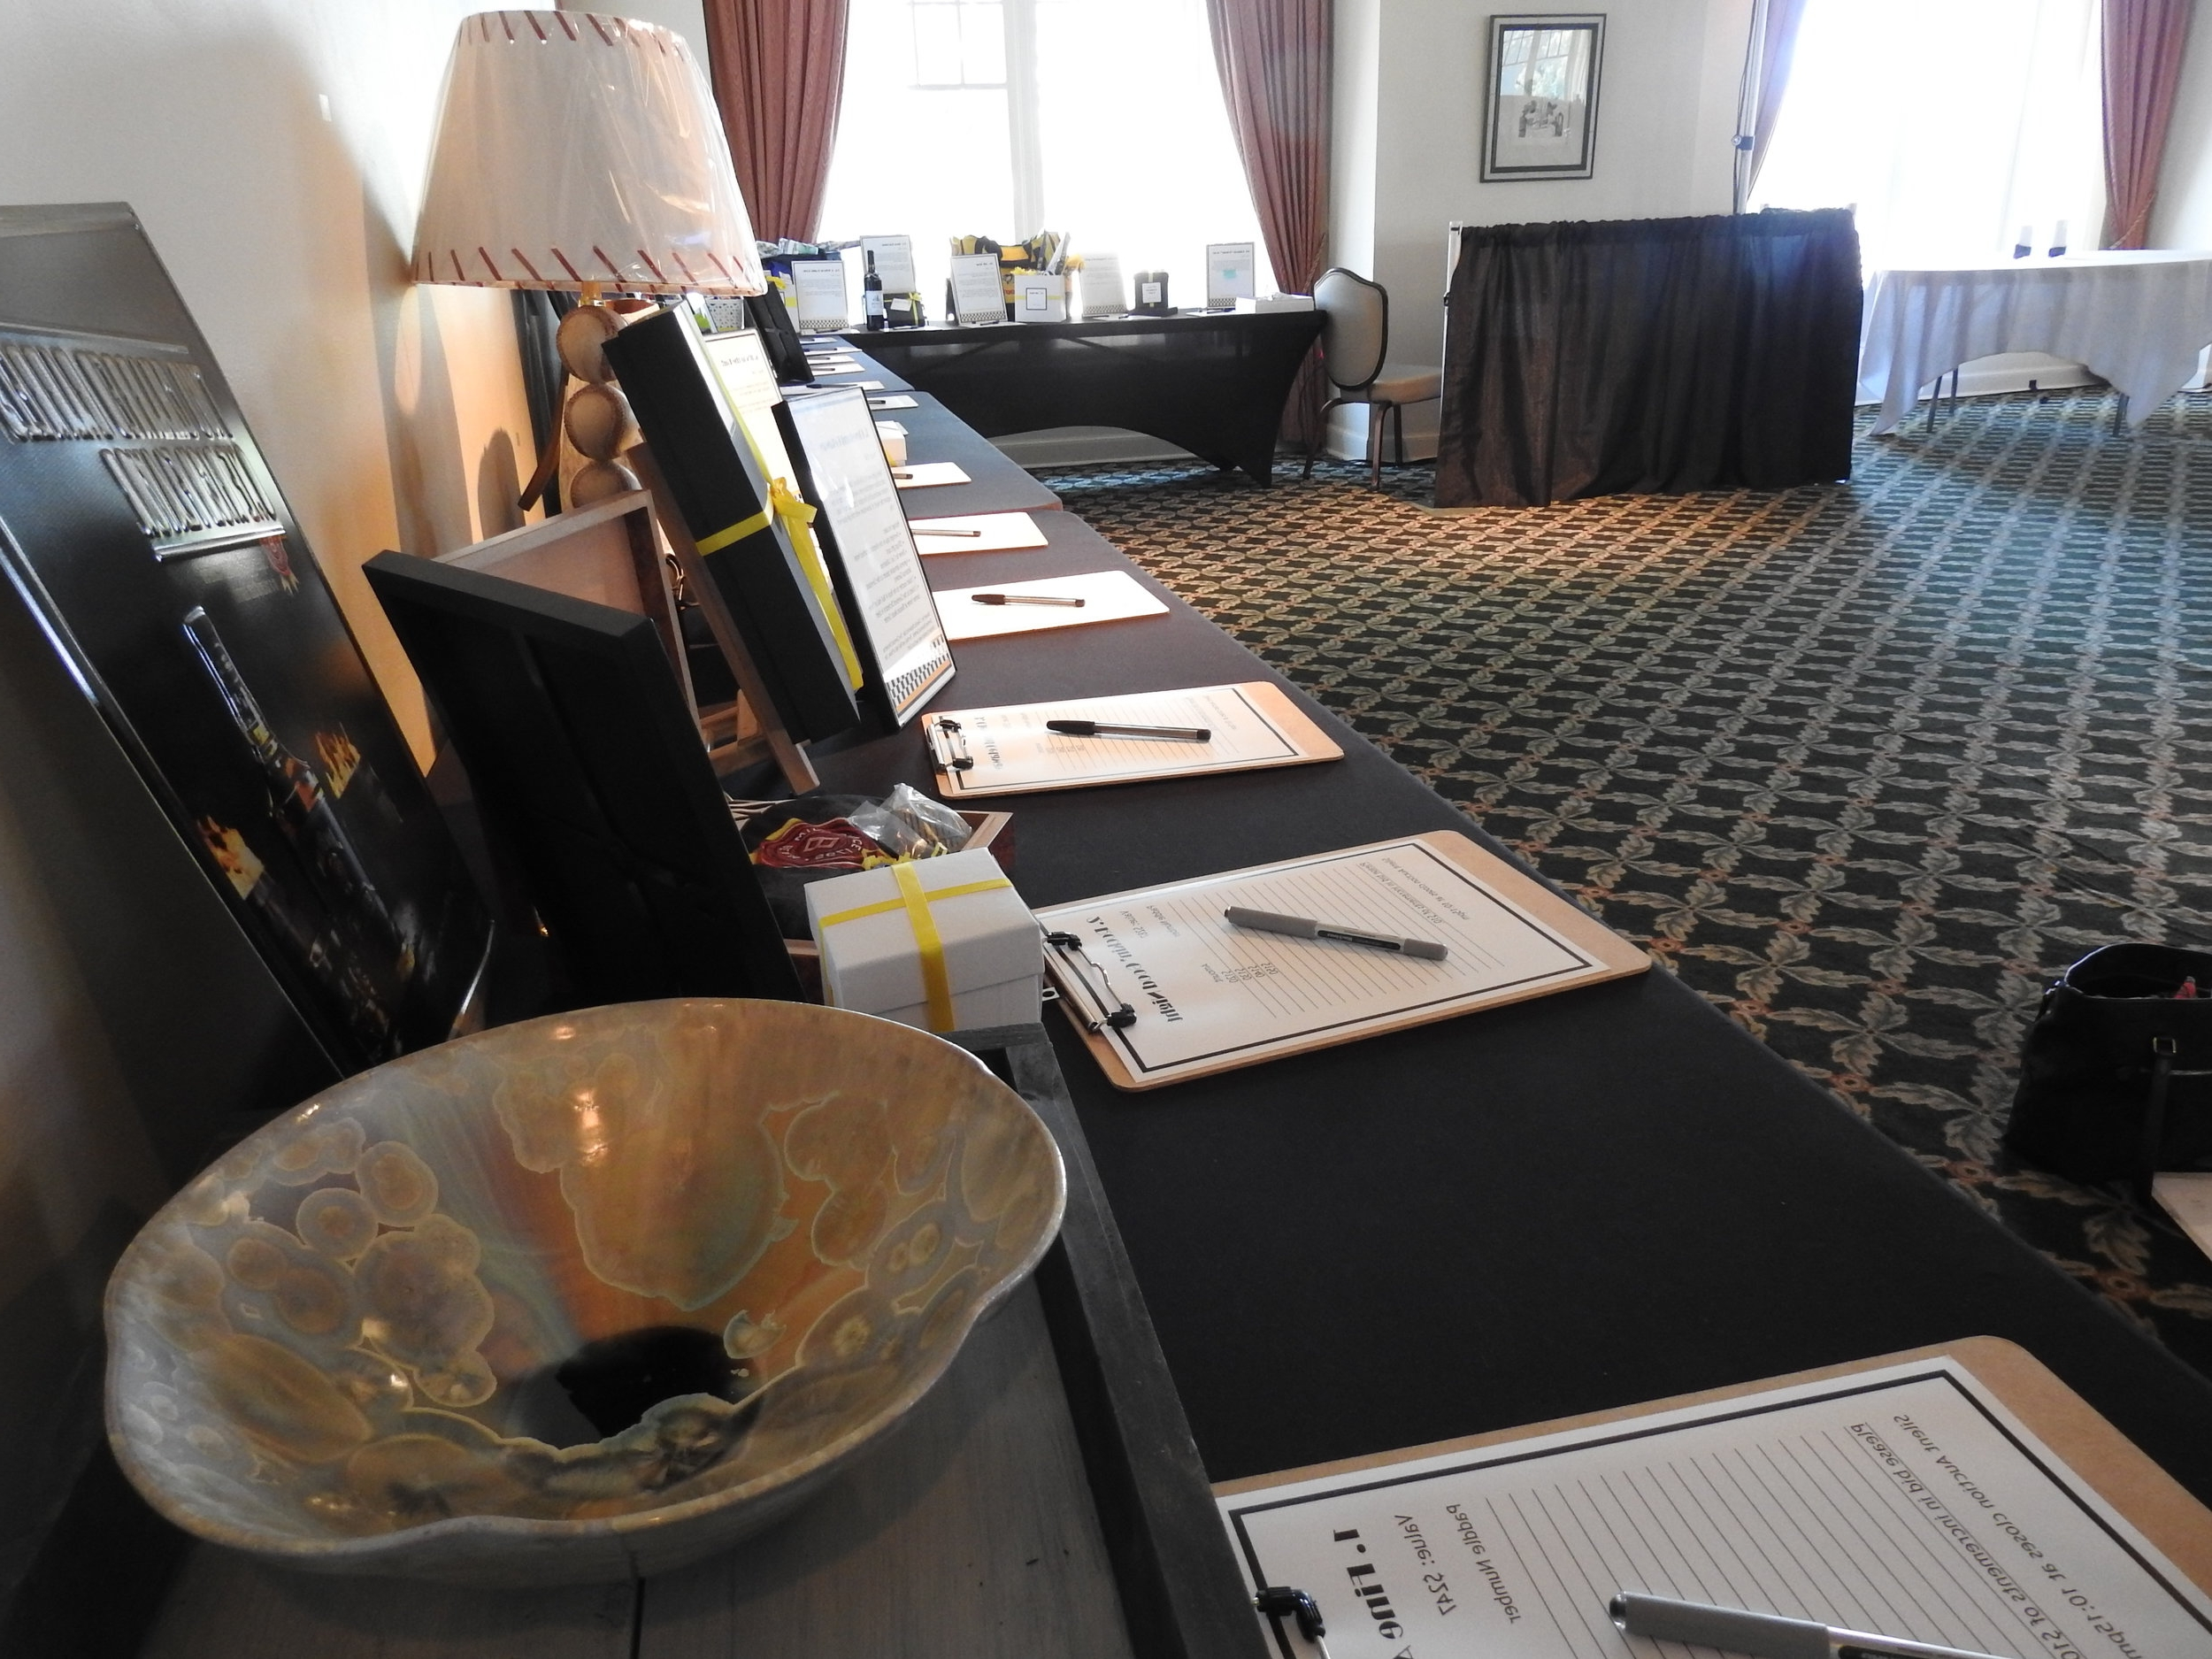 Silent Auction - Thank you to all of local businesses who participated in our Silent Auction!